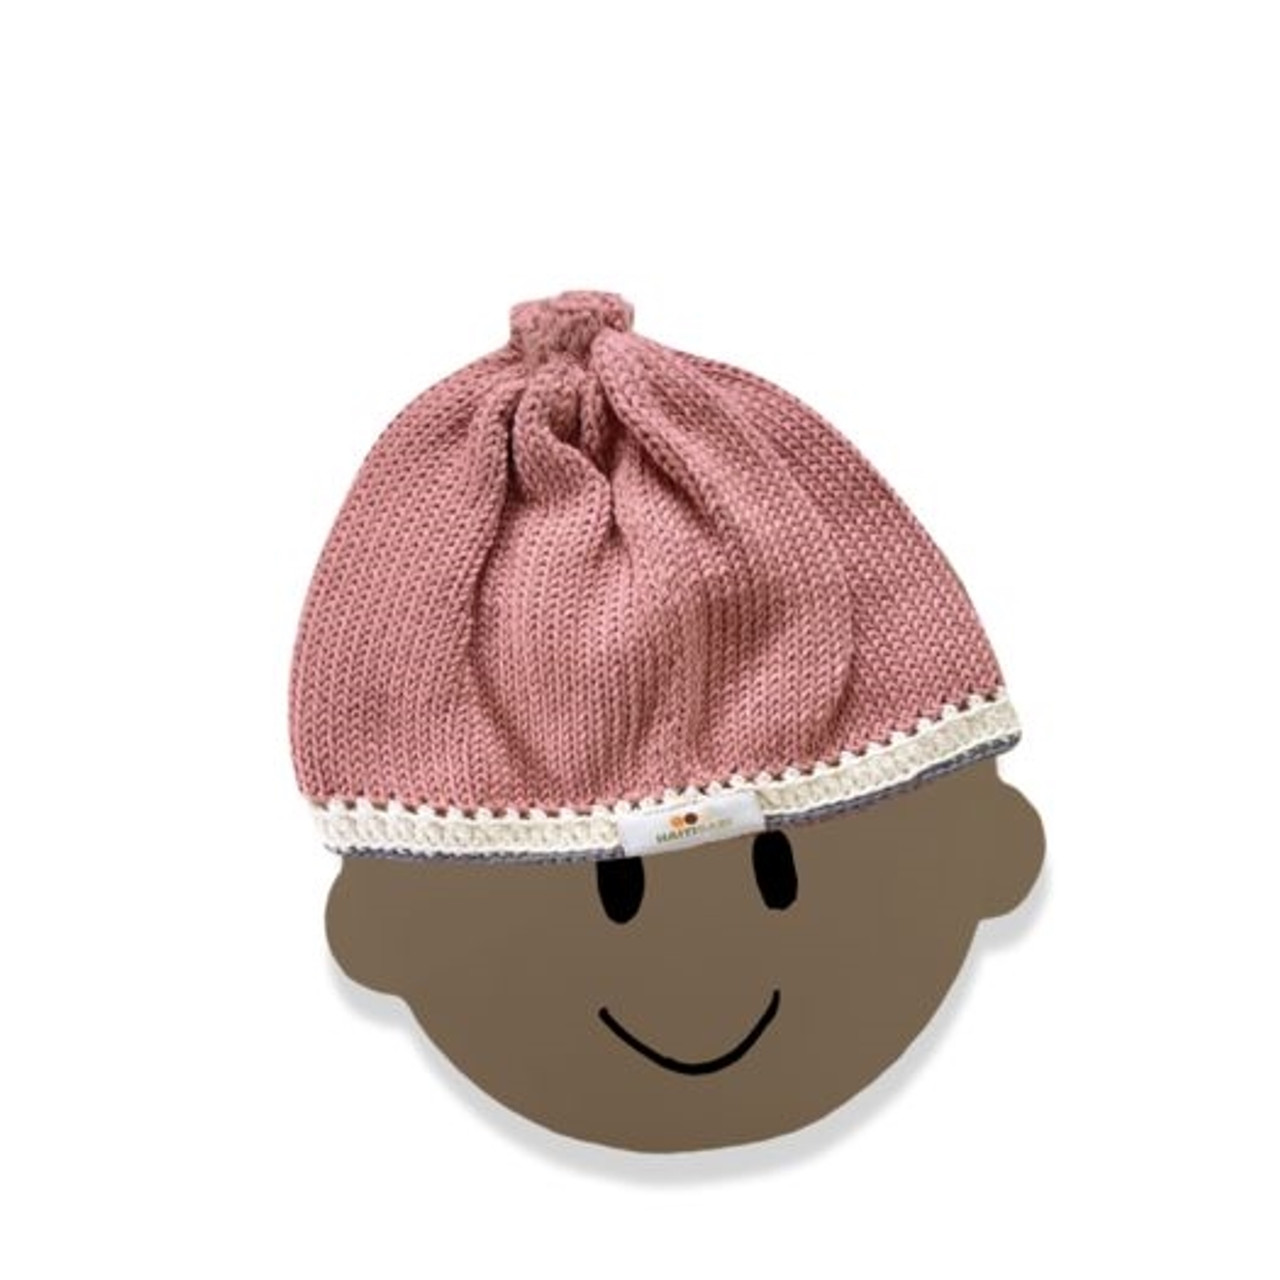 Hand Knit Baby Hat - Pebble and Stone, 0-6m